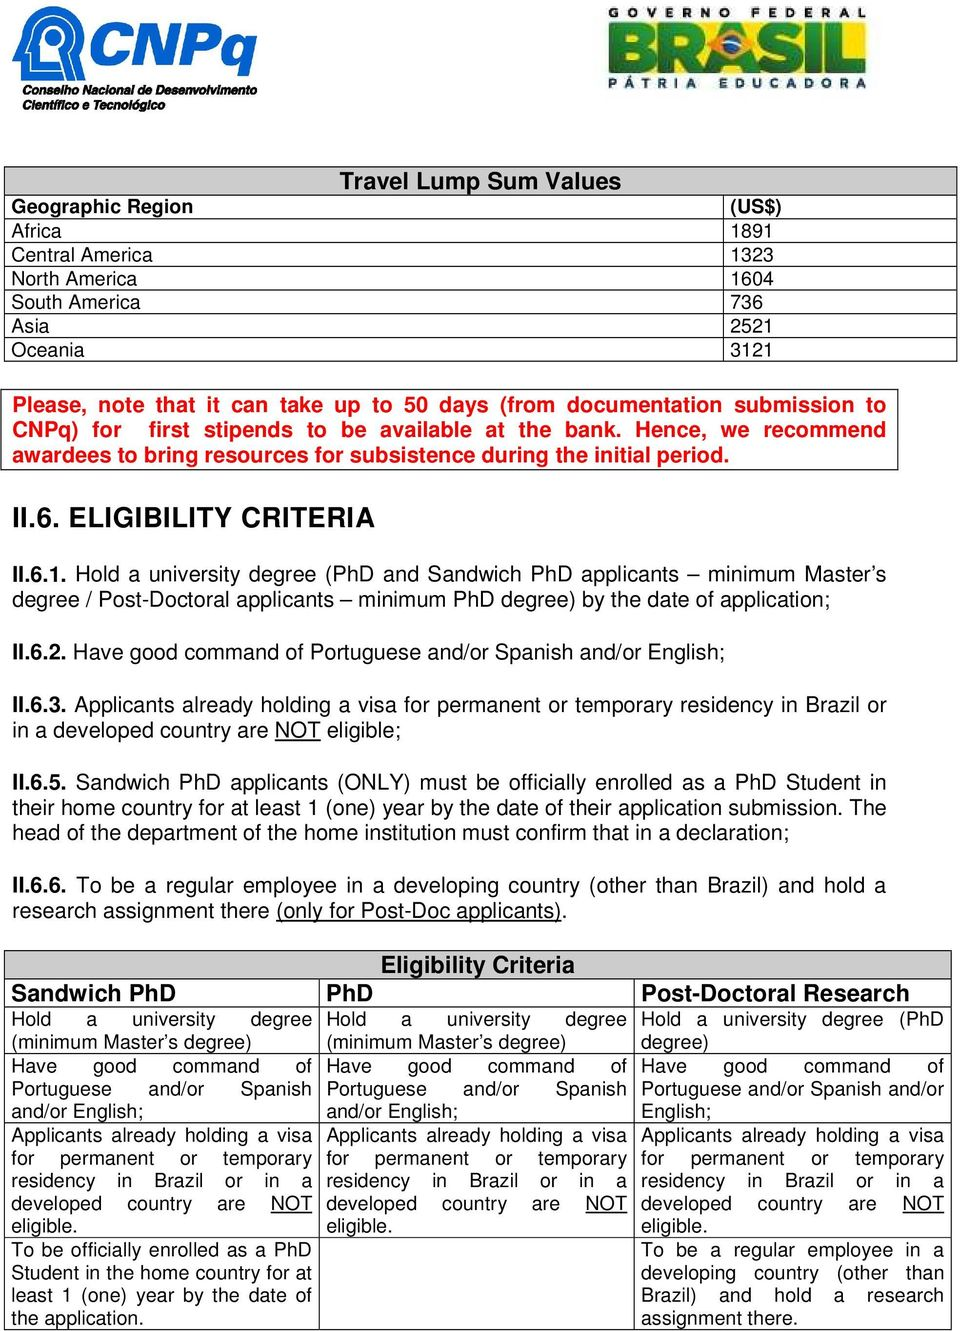 ELIGIBILITY CRITERIA II.6.1. Hold a university degree (PhD and Sandwich PhD applicants minimum Master s degree / Post-Doctoral applicants minimum PhD degree) by the date of application; II.6.2.